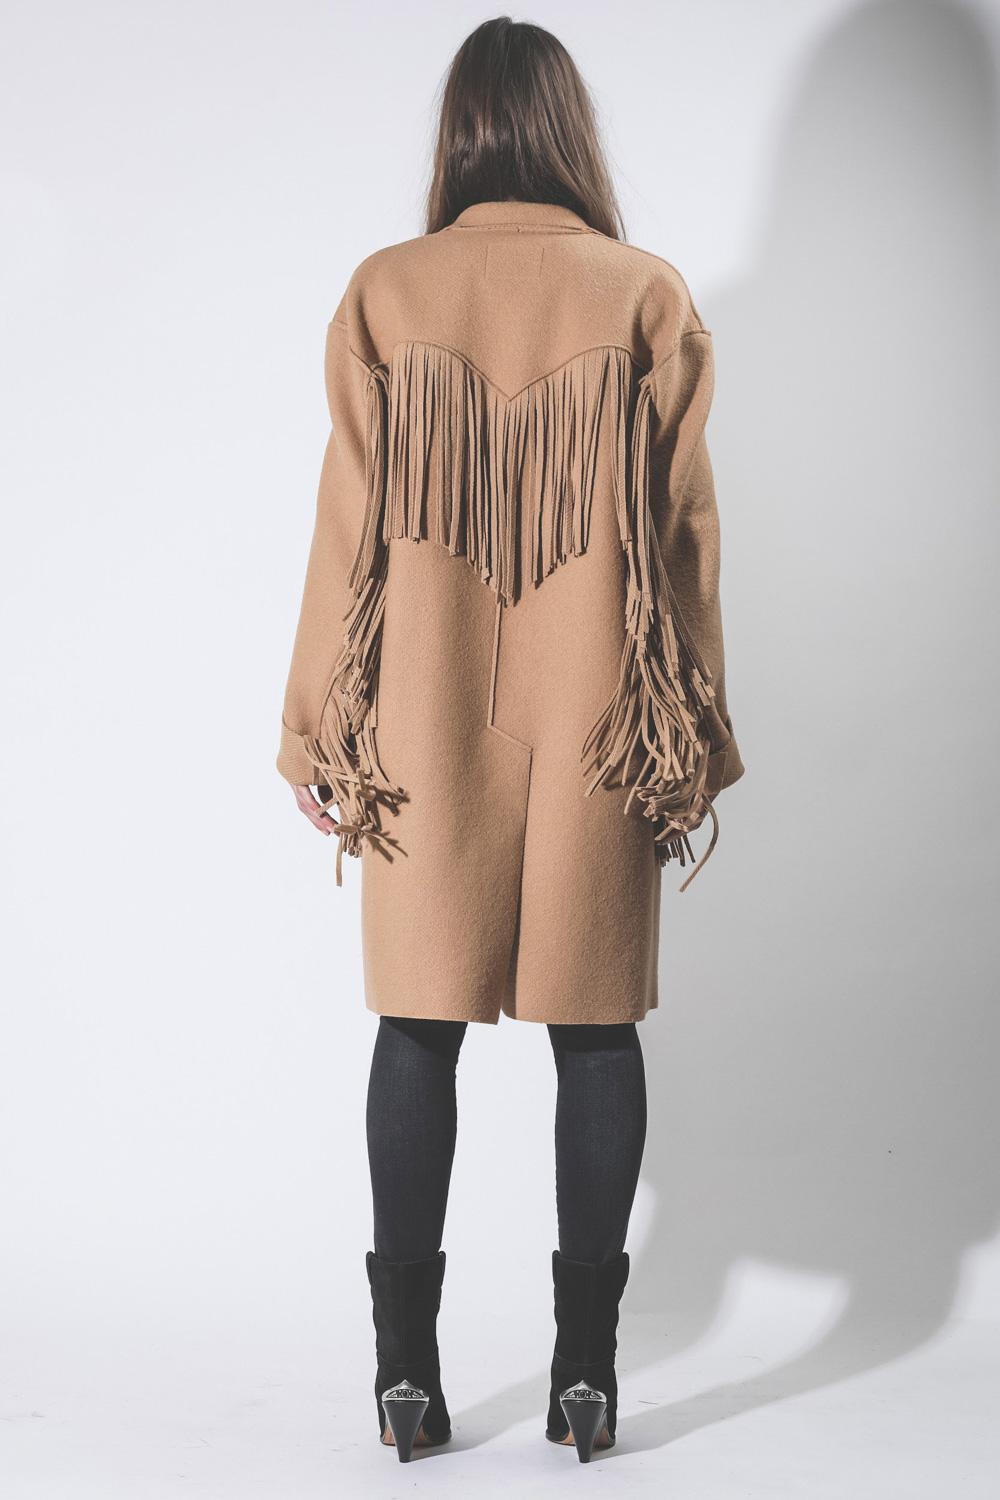 R13 Denim Pré-Collection Fringe Raw Cut Coat - Camel